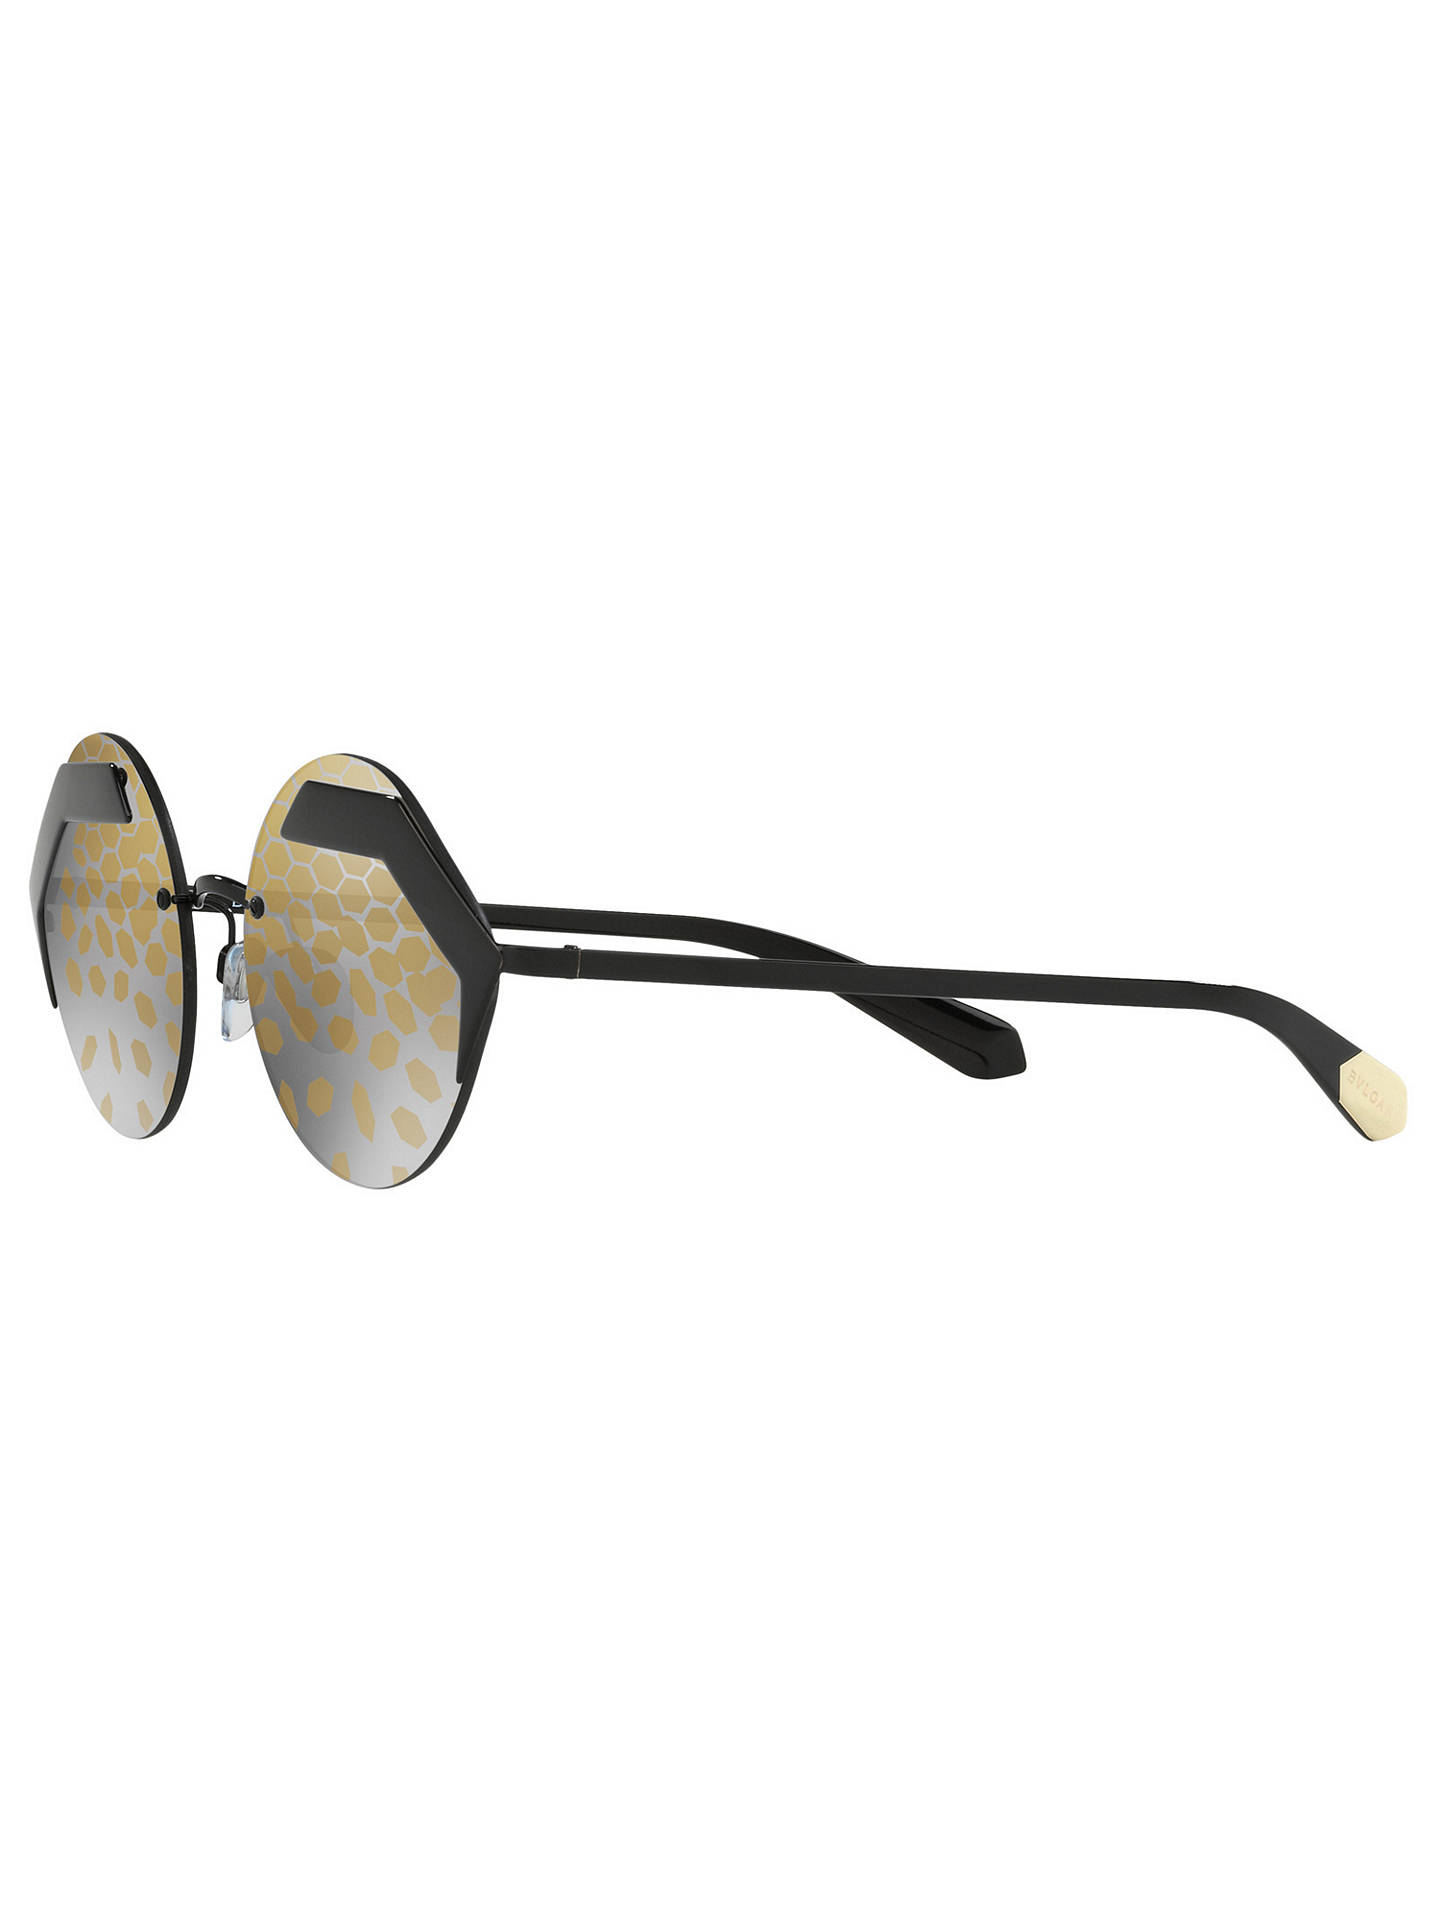 BuyBVLGARI BV6089 Women's Sunglasses, Black/Gold Online at johnlewis.com